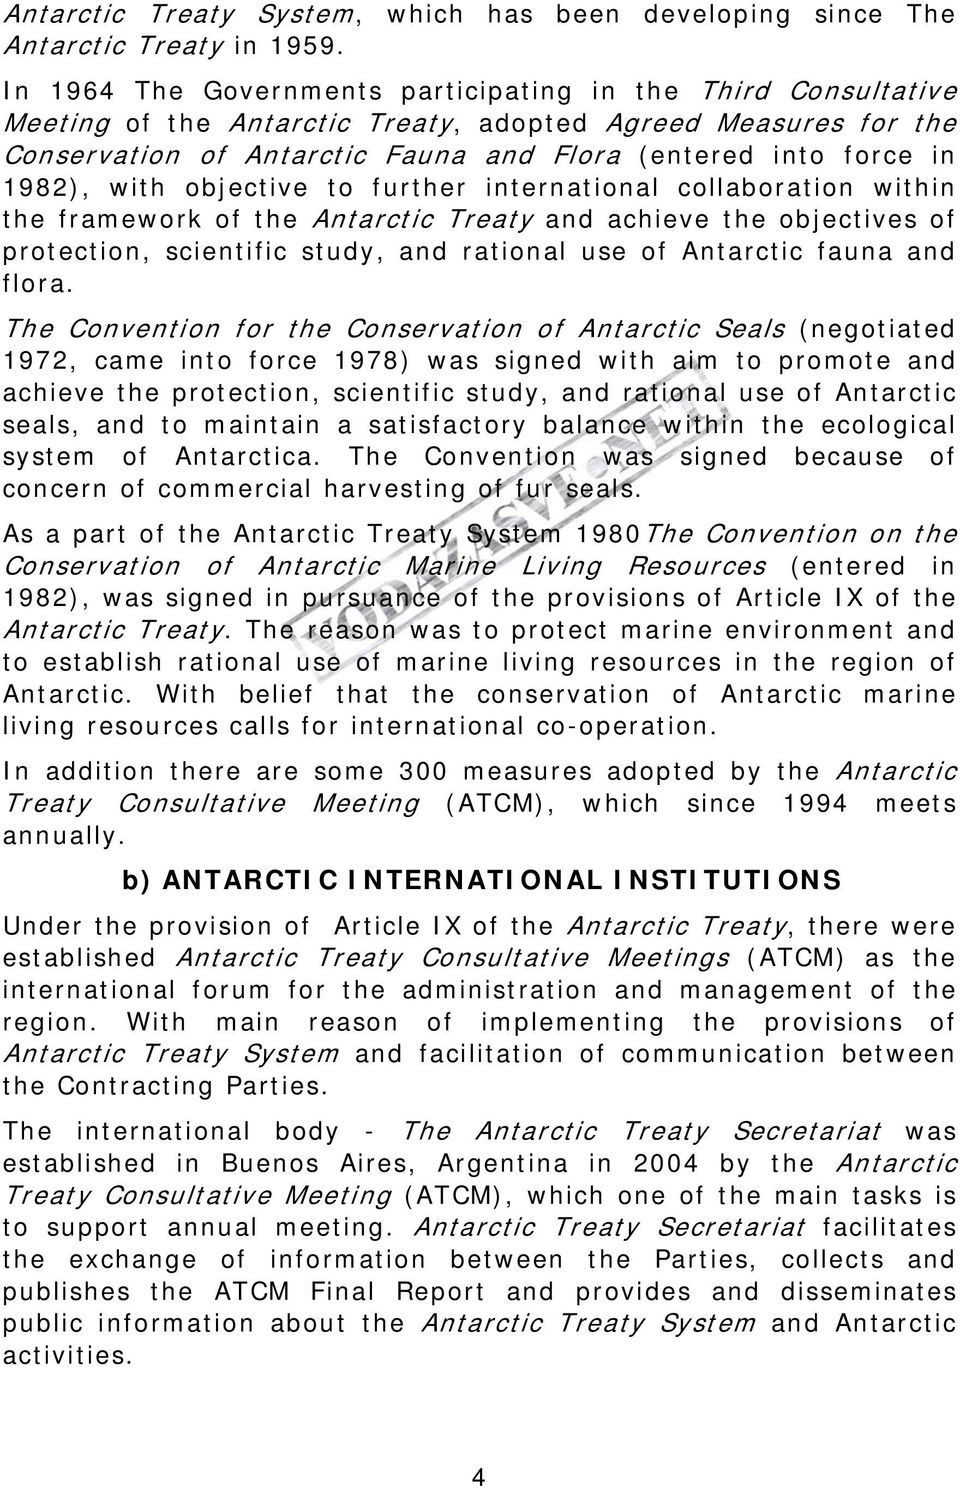 1982), with objective to further international collaboration within the framework of the Antarctic Treaty and achieve the objectives of protection, scientific study, and rational use of Antarctic